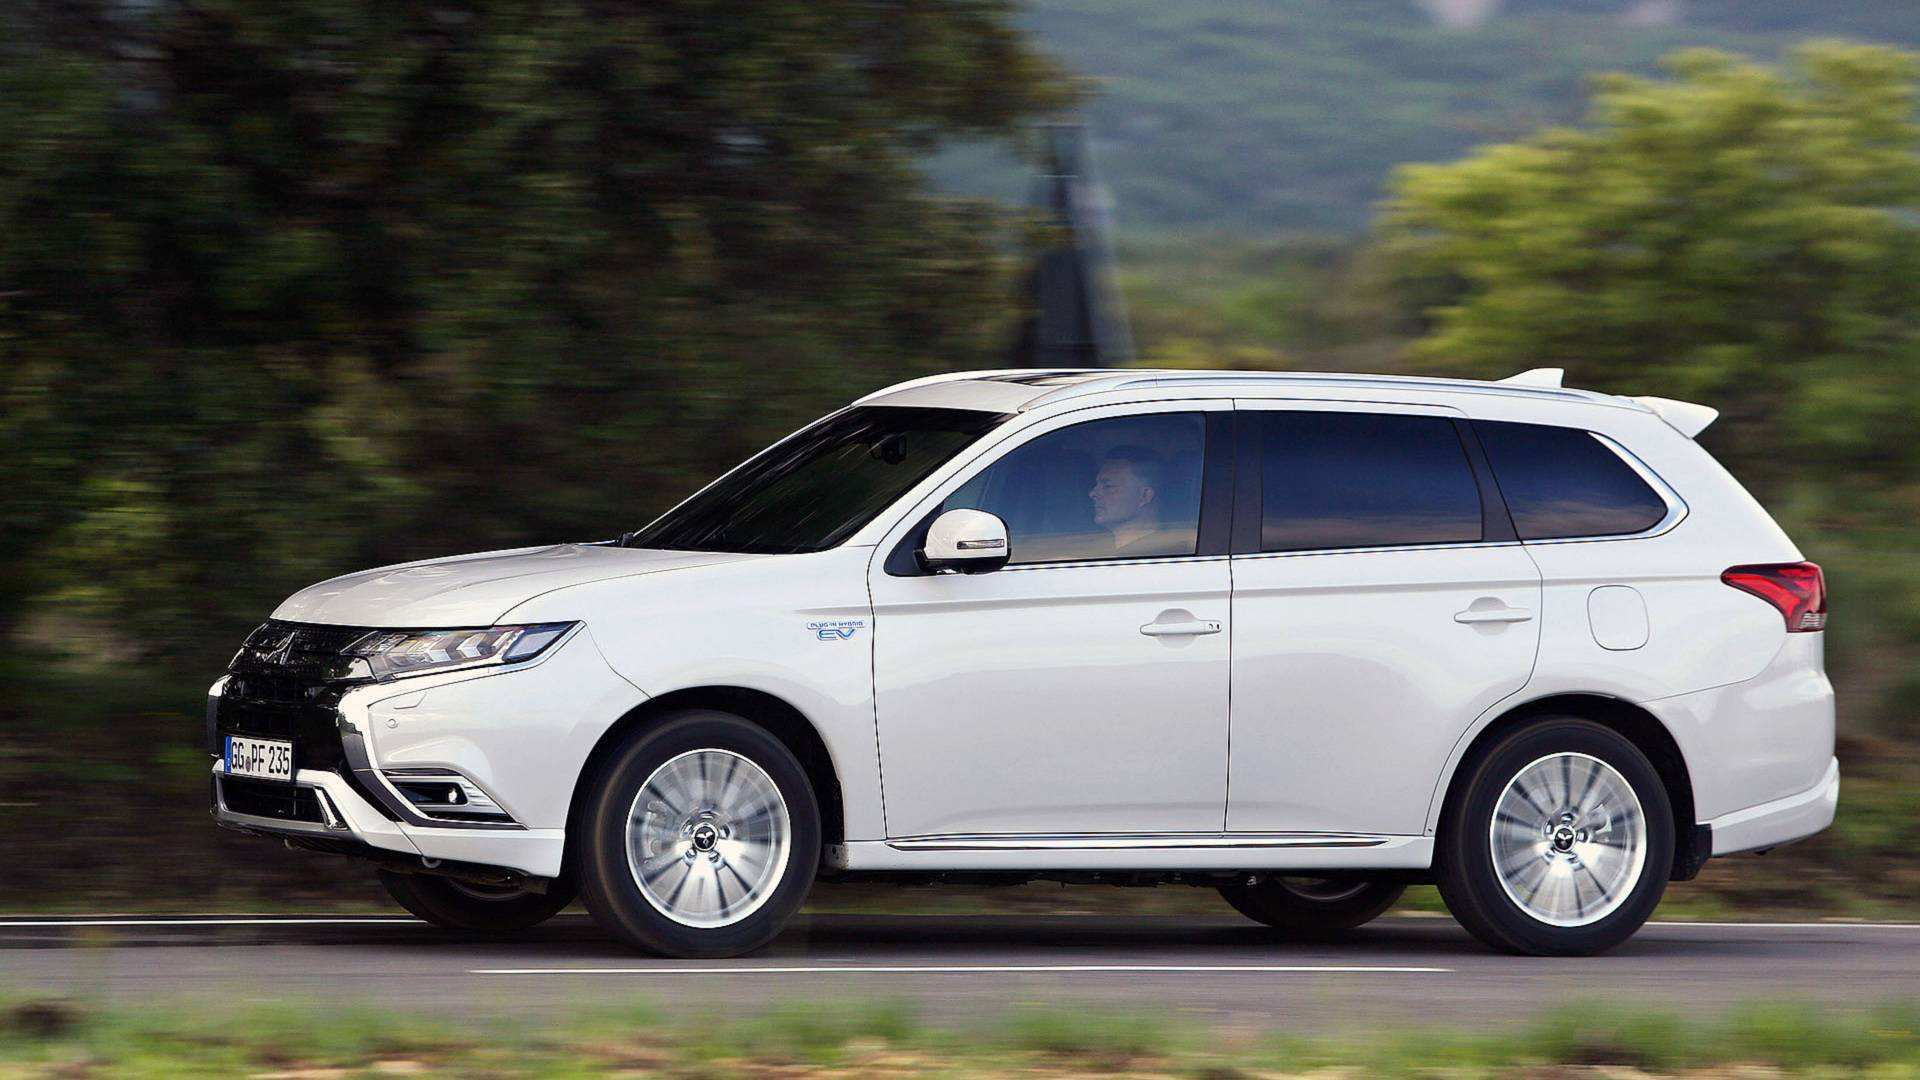 27 Best Review 2019 Mitsubishi Outlander Phev Review Spesification with 2019 Mitsubishi Outlander Phev Review